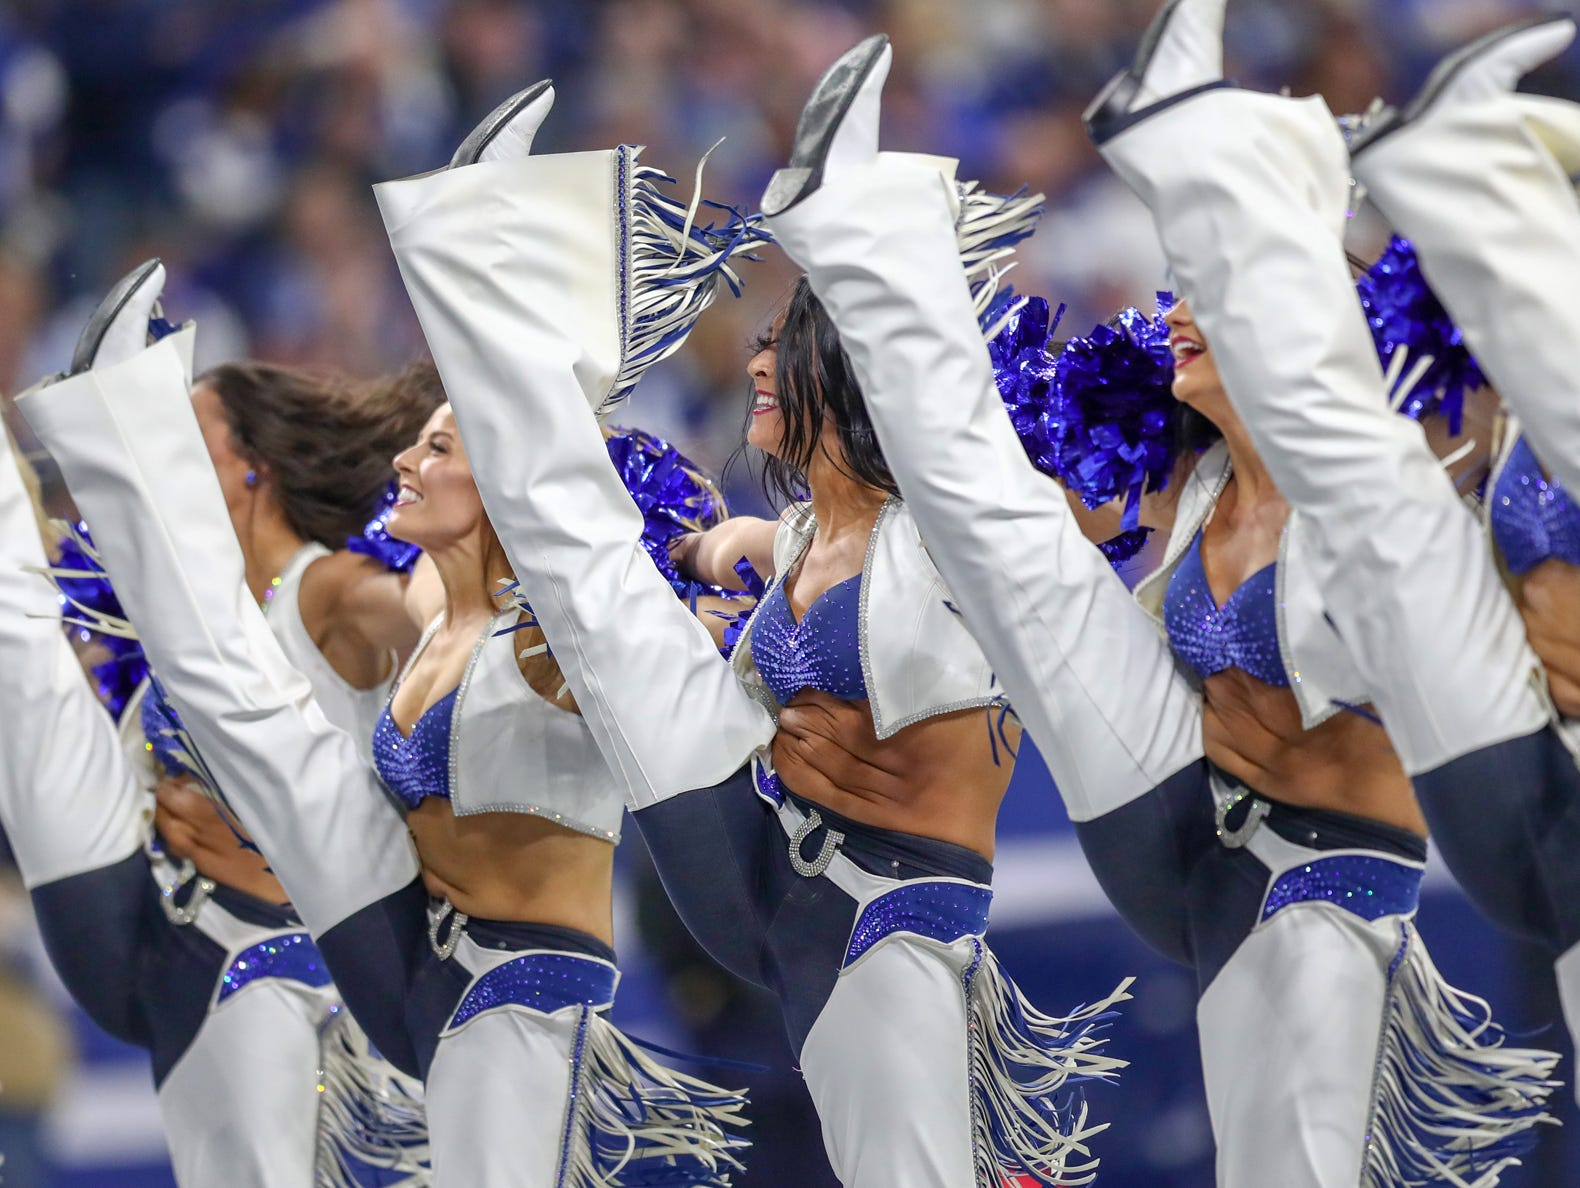 The Indianapolis Colts cheer during the game against the Tennessee Titans at Lucas Oil Stadium in Indianapolis, on Sunday, Nov. 18, 2018.